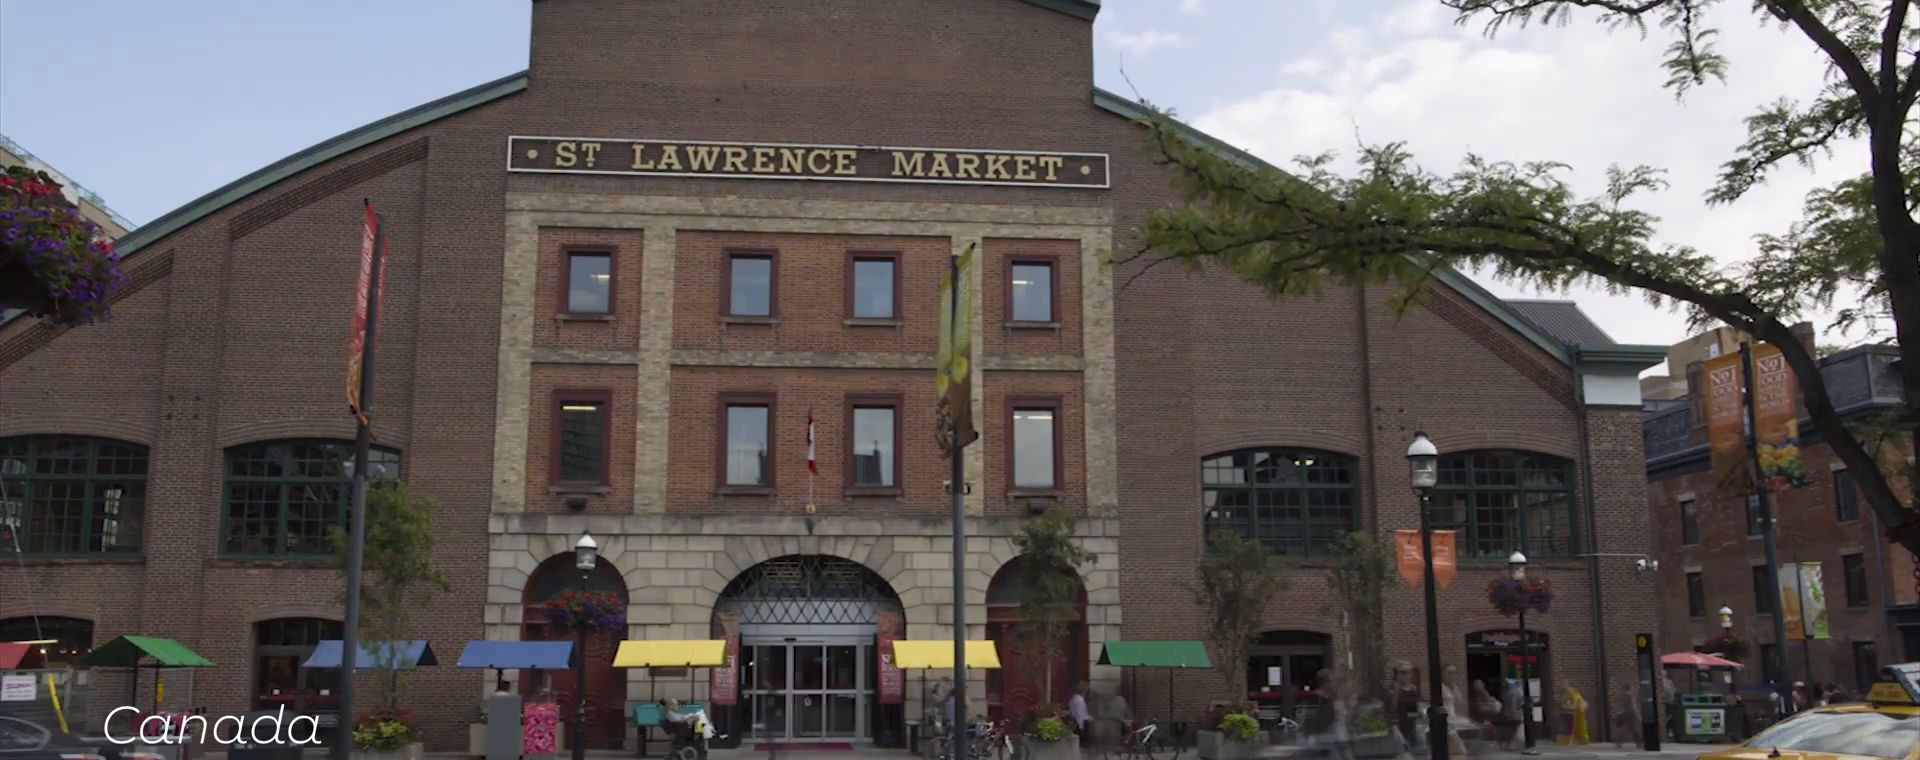 THE ST. LAWRENCE MARKET